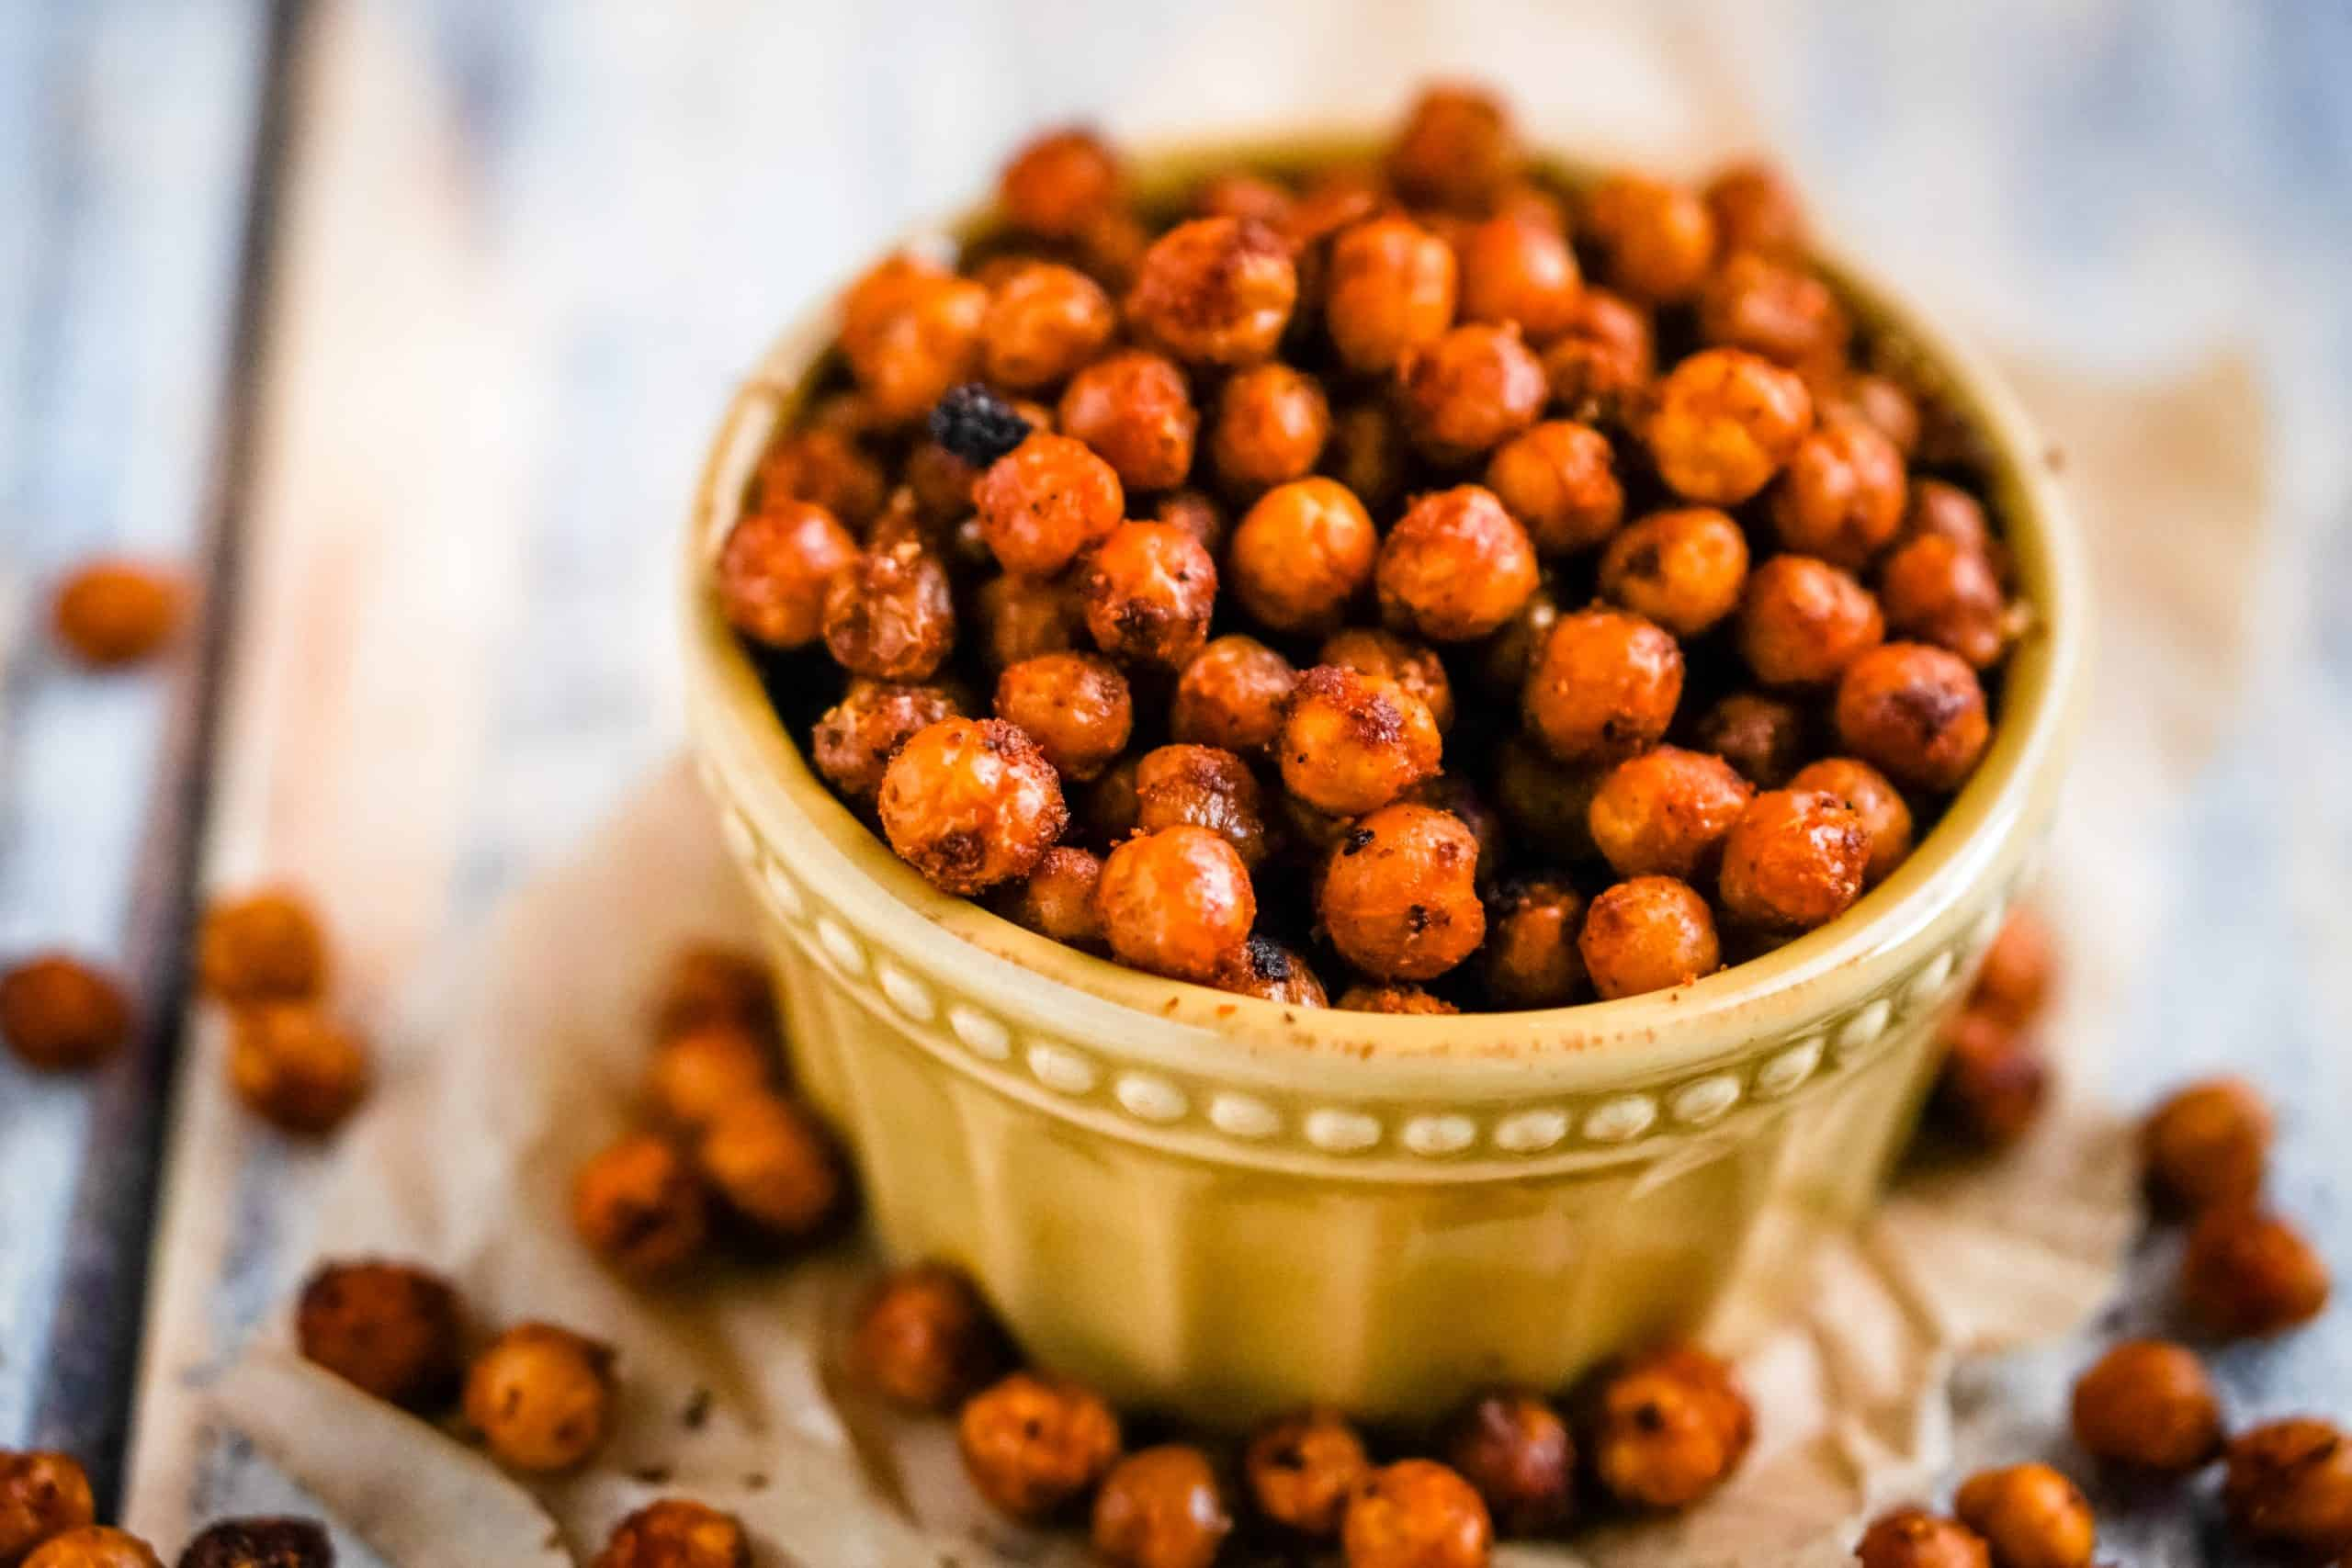 roasted buffalo chickpeas in a yellow bowl.